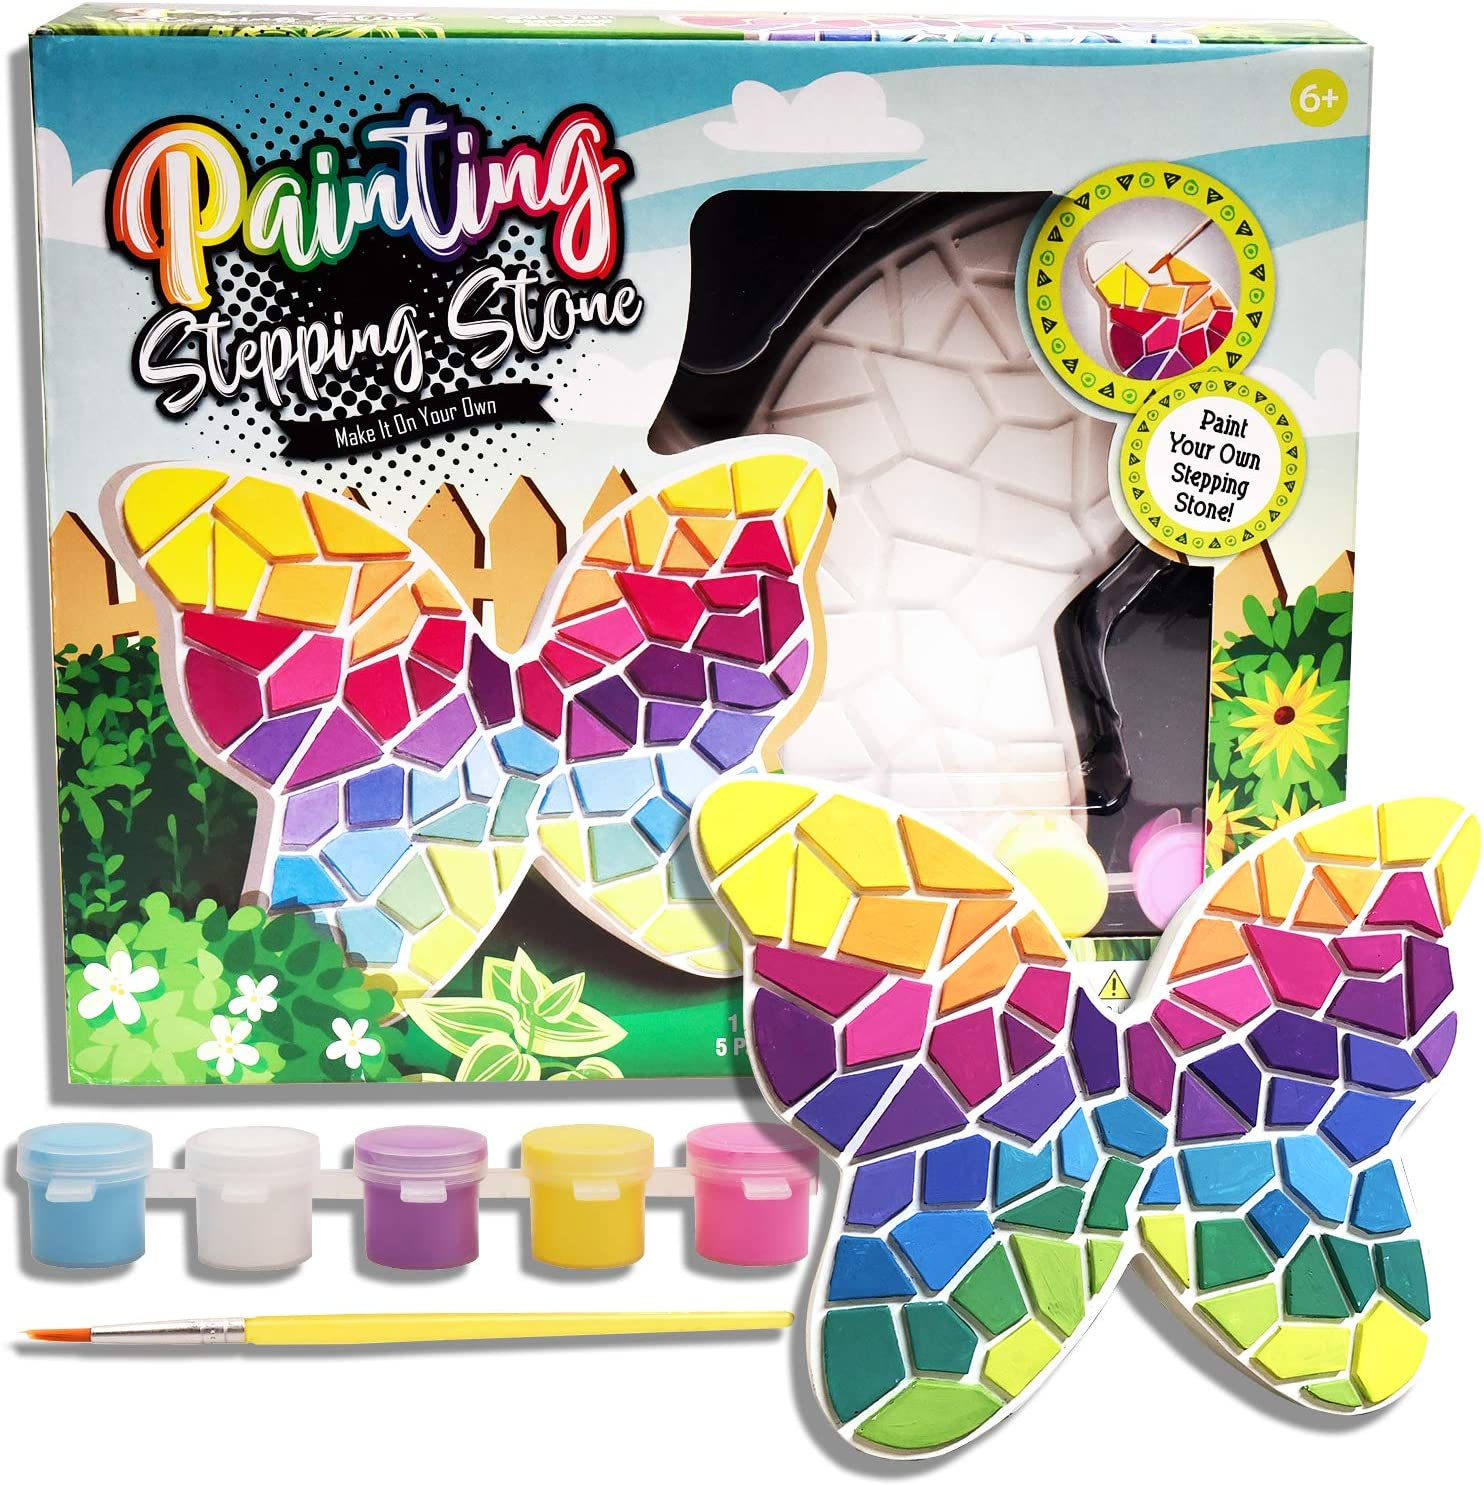 Eduzoo Paint Your Own Stepping Stone - Art and Craft Painting Kit, DIY Garden Stone, Mosaic Rainbow Stepping Stone, Butterfly